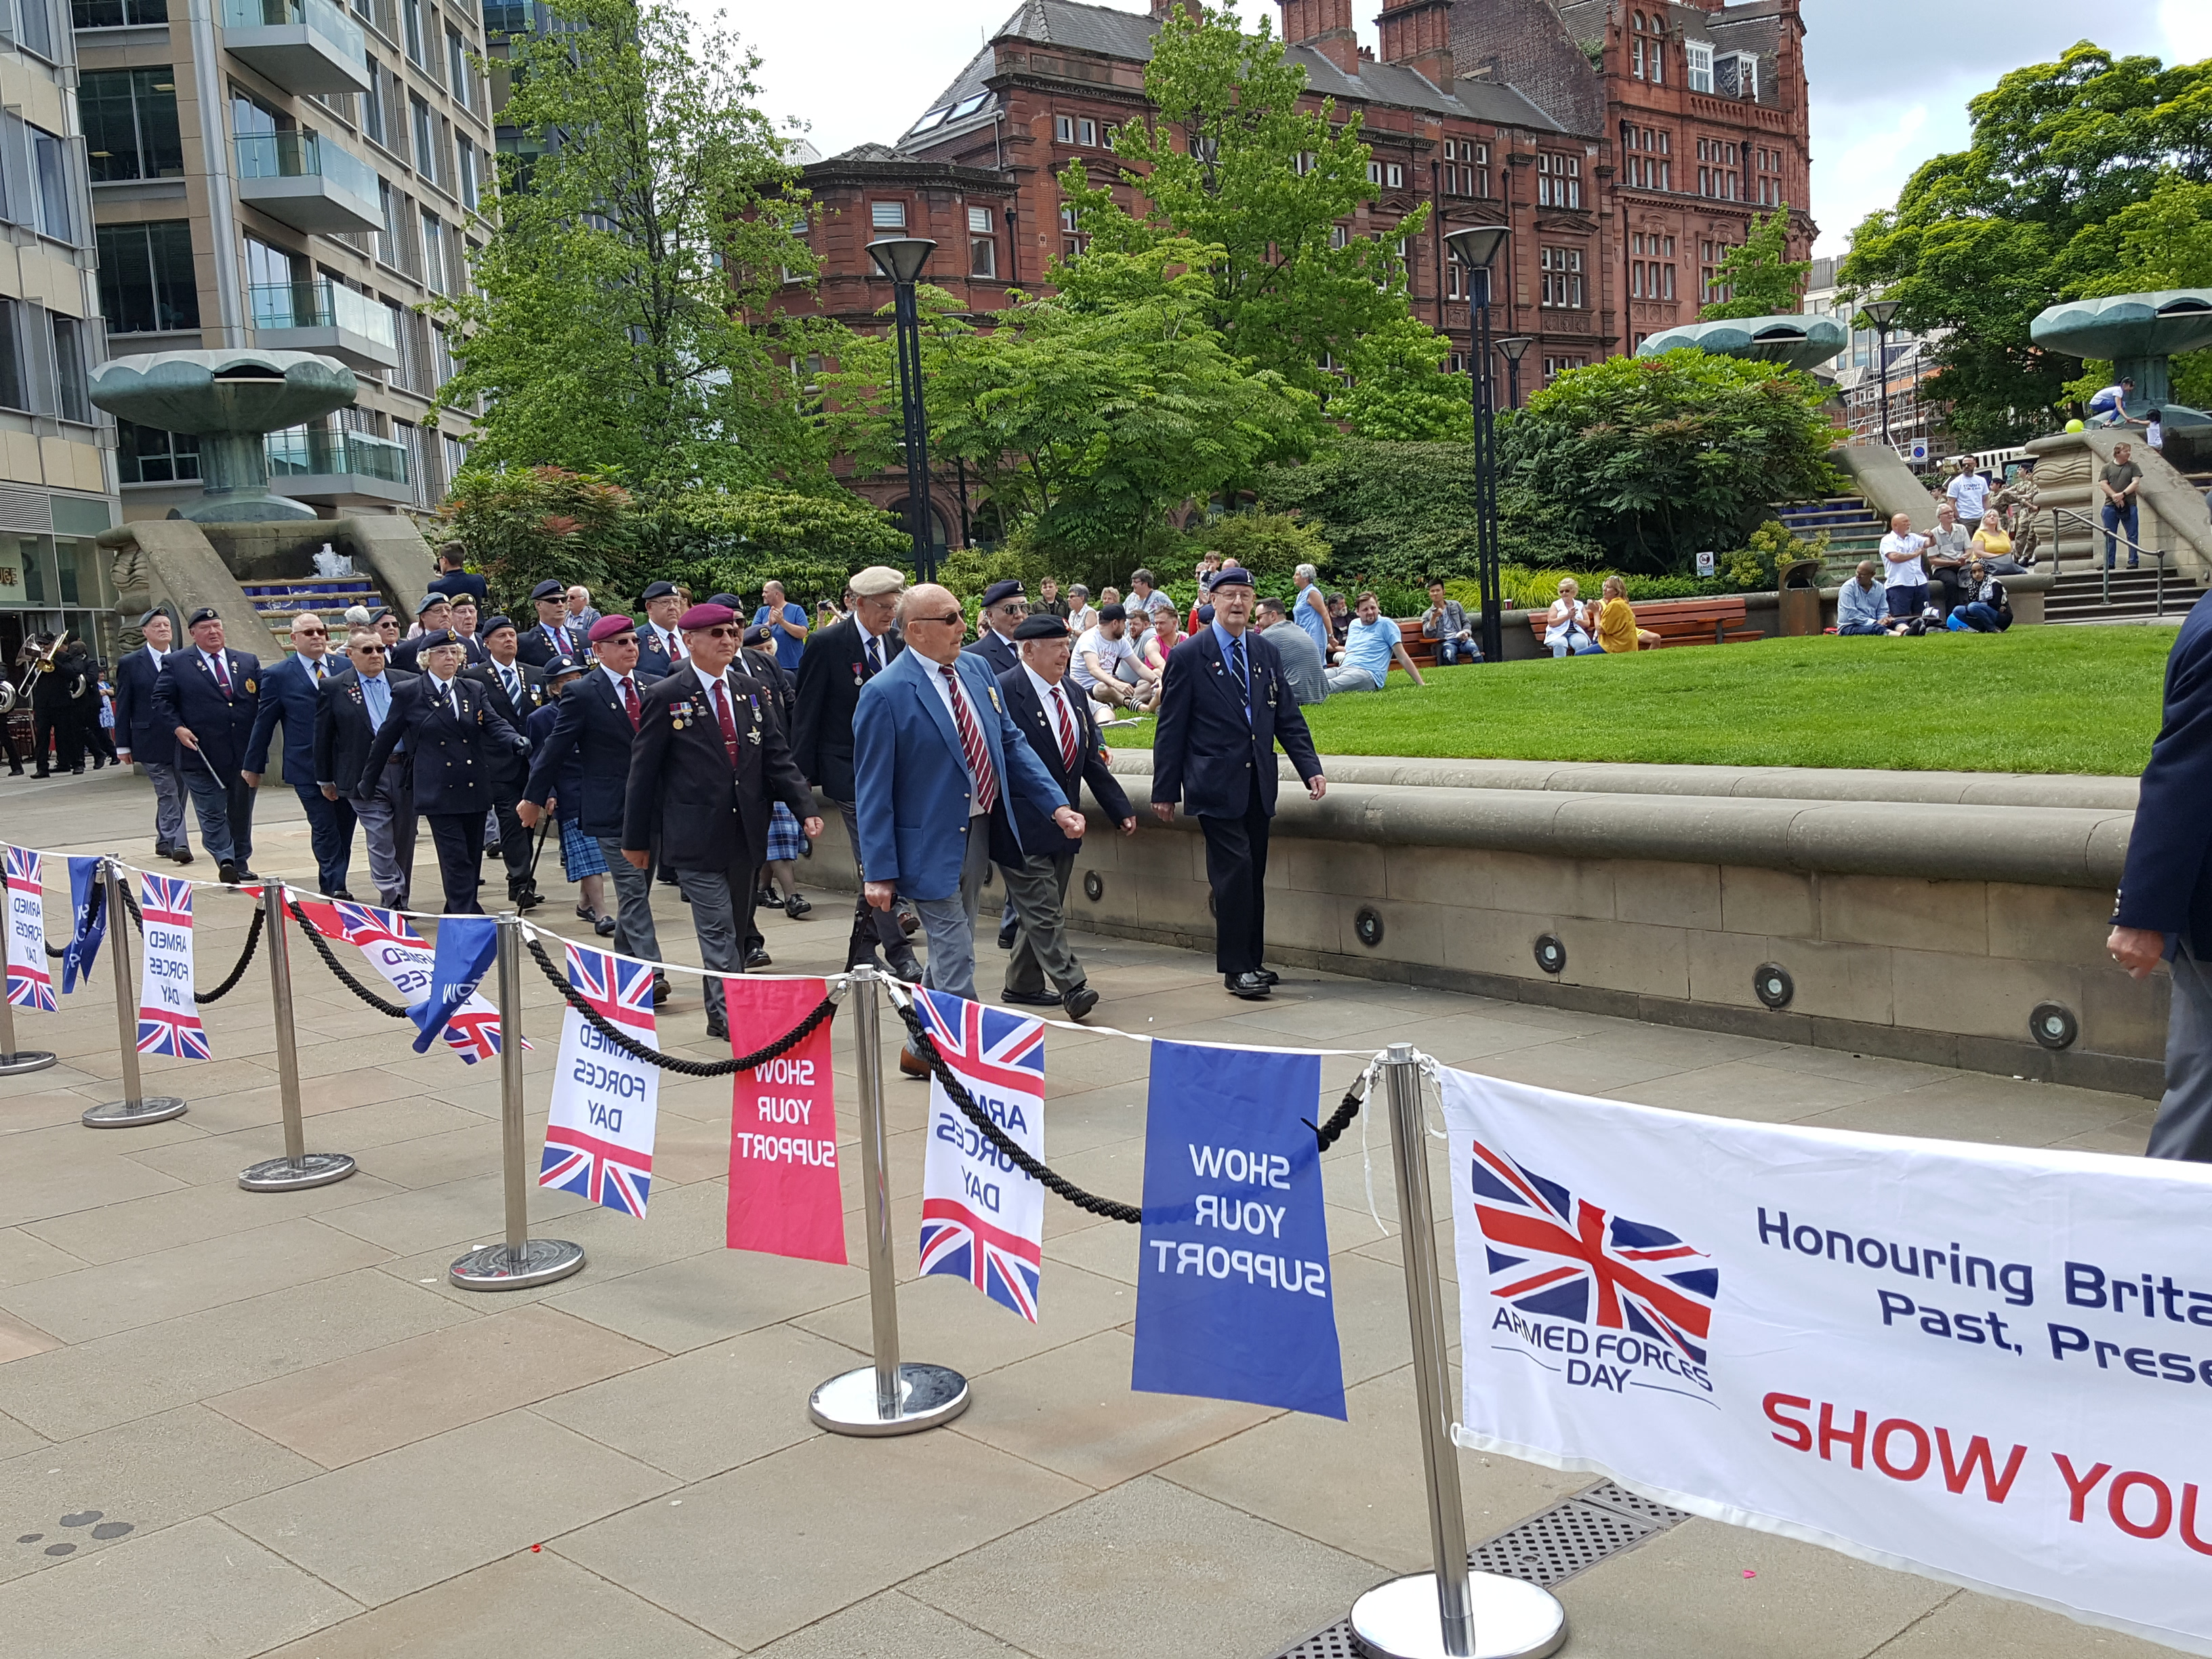 Armed Forces and Veterans Day 2019 in Sheffield